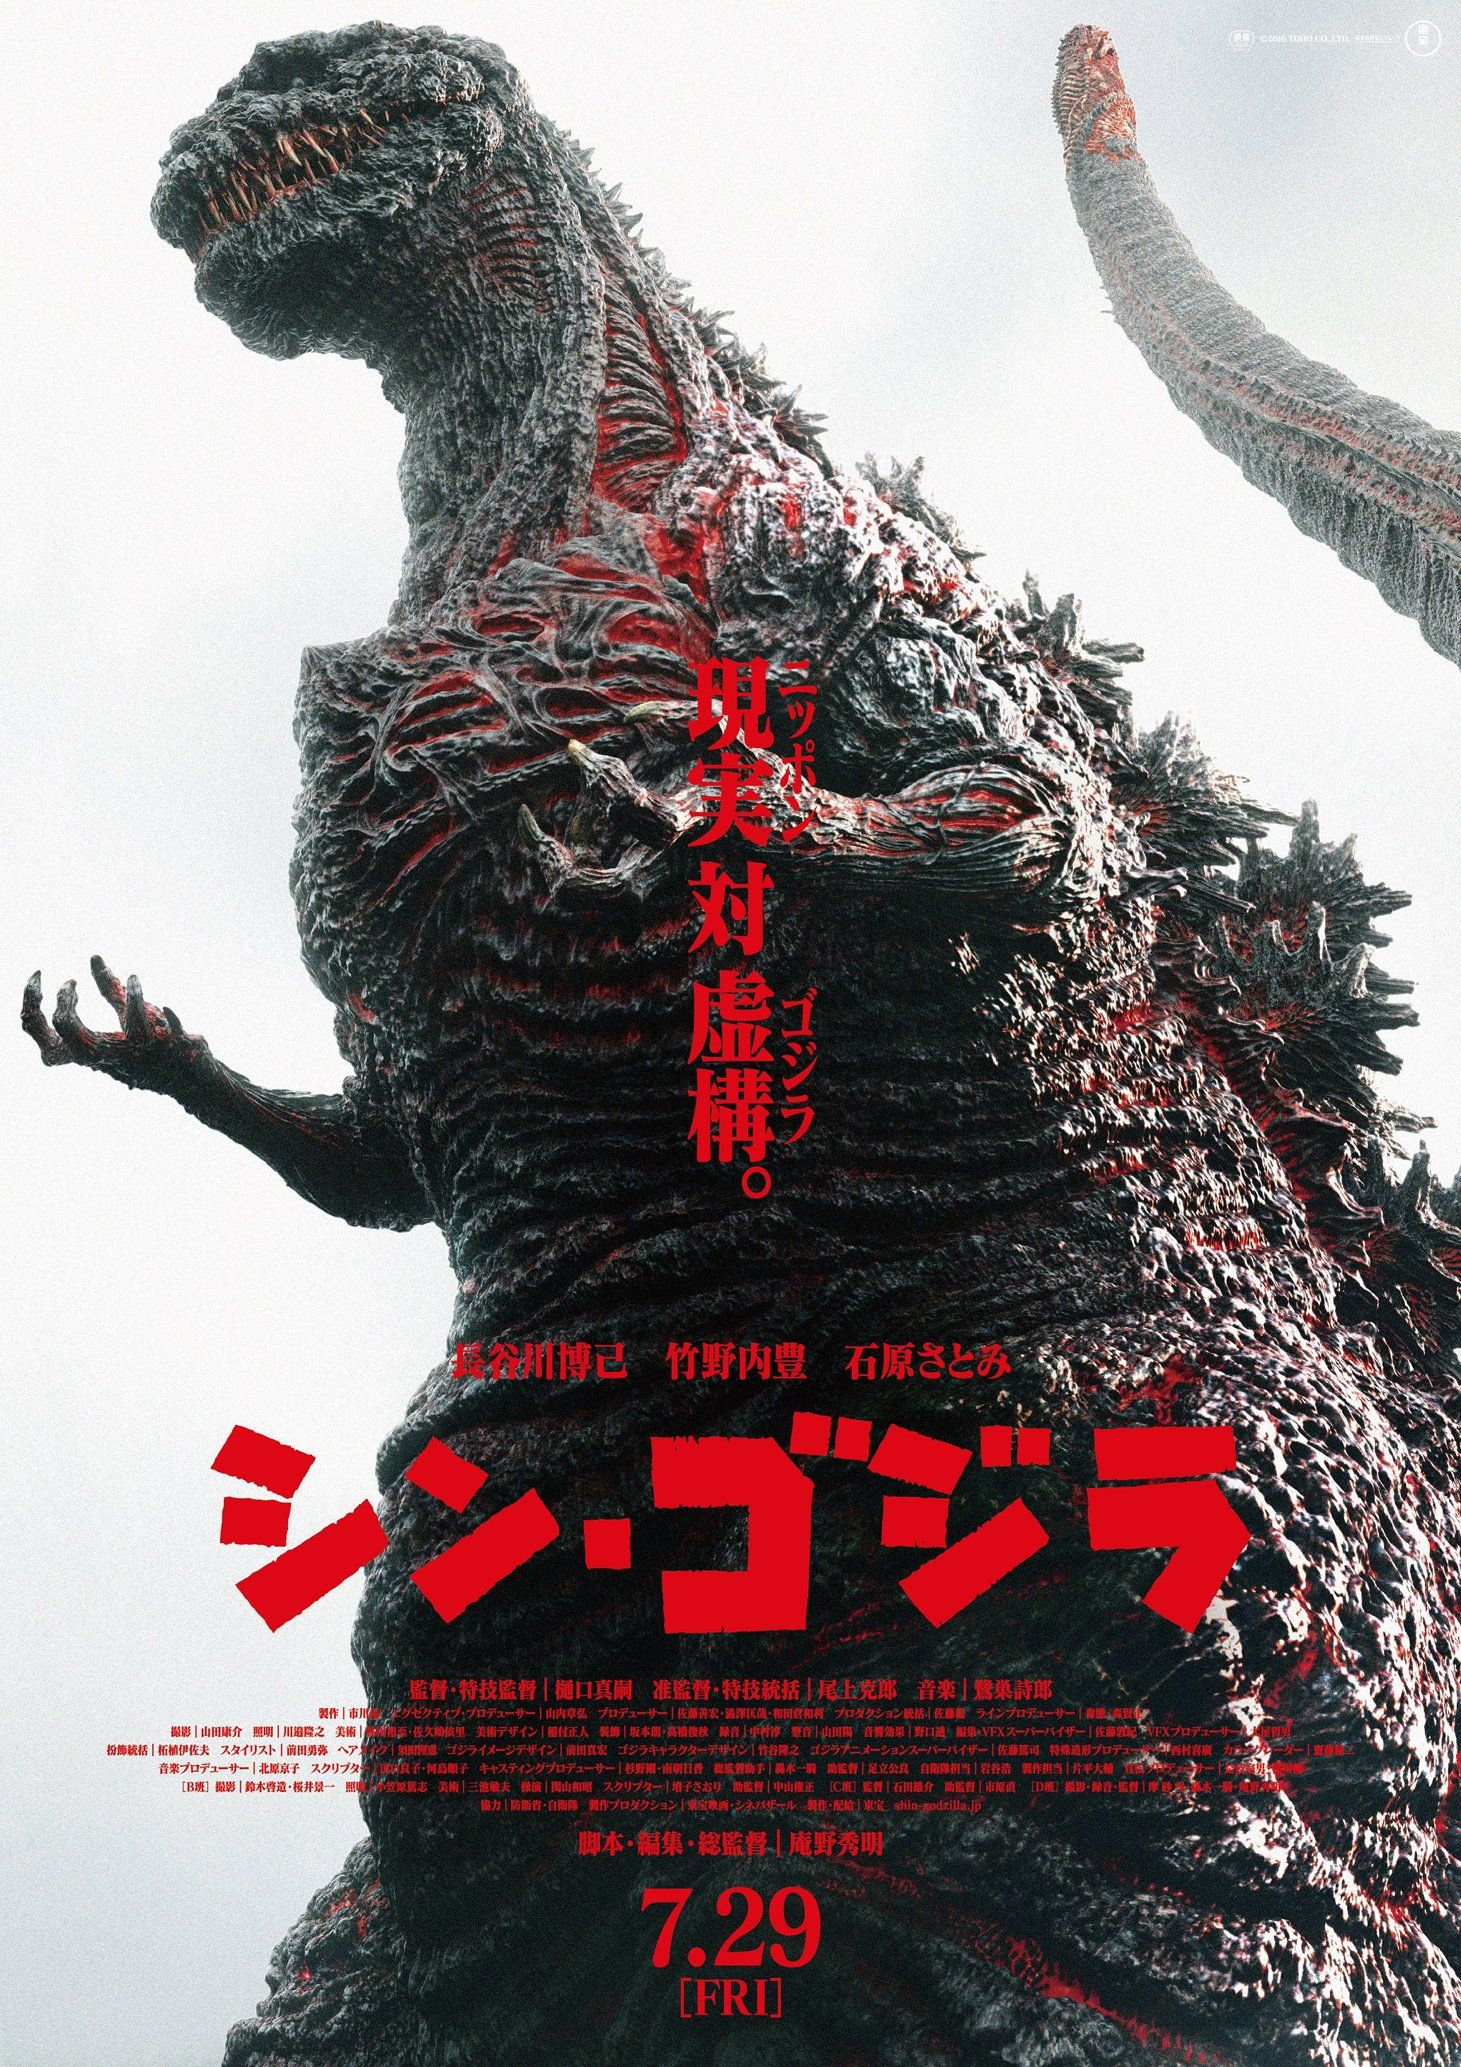 Shin Godzilla 2016 HD Wallpaper From Gallsourcecom Godzilla 1461x2067